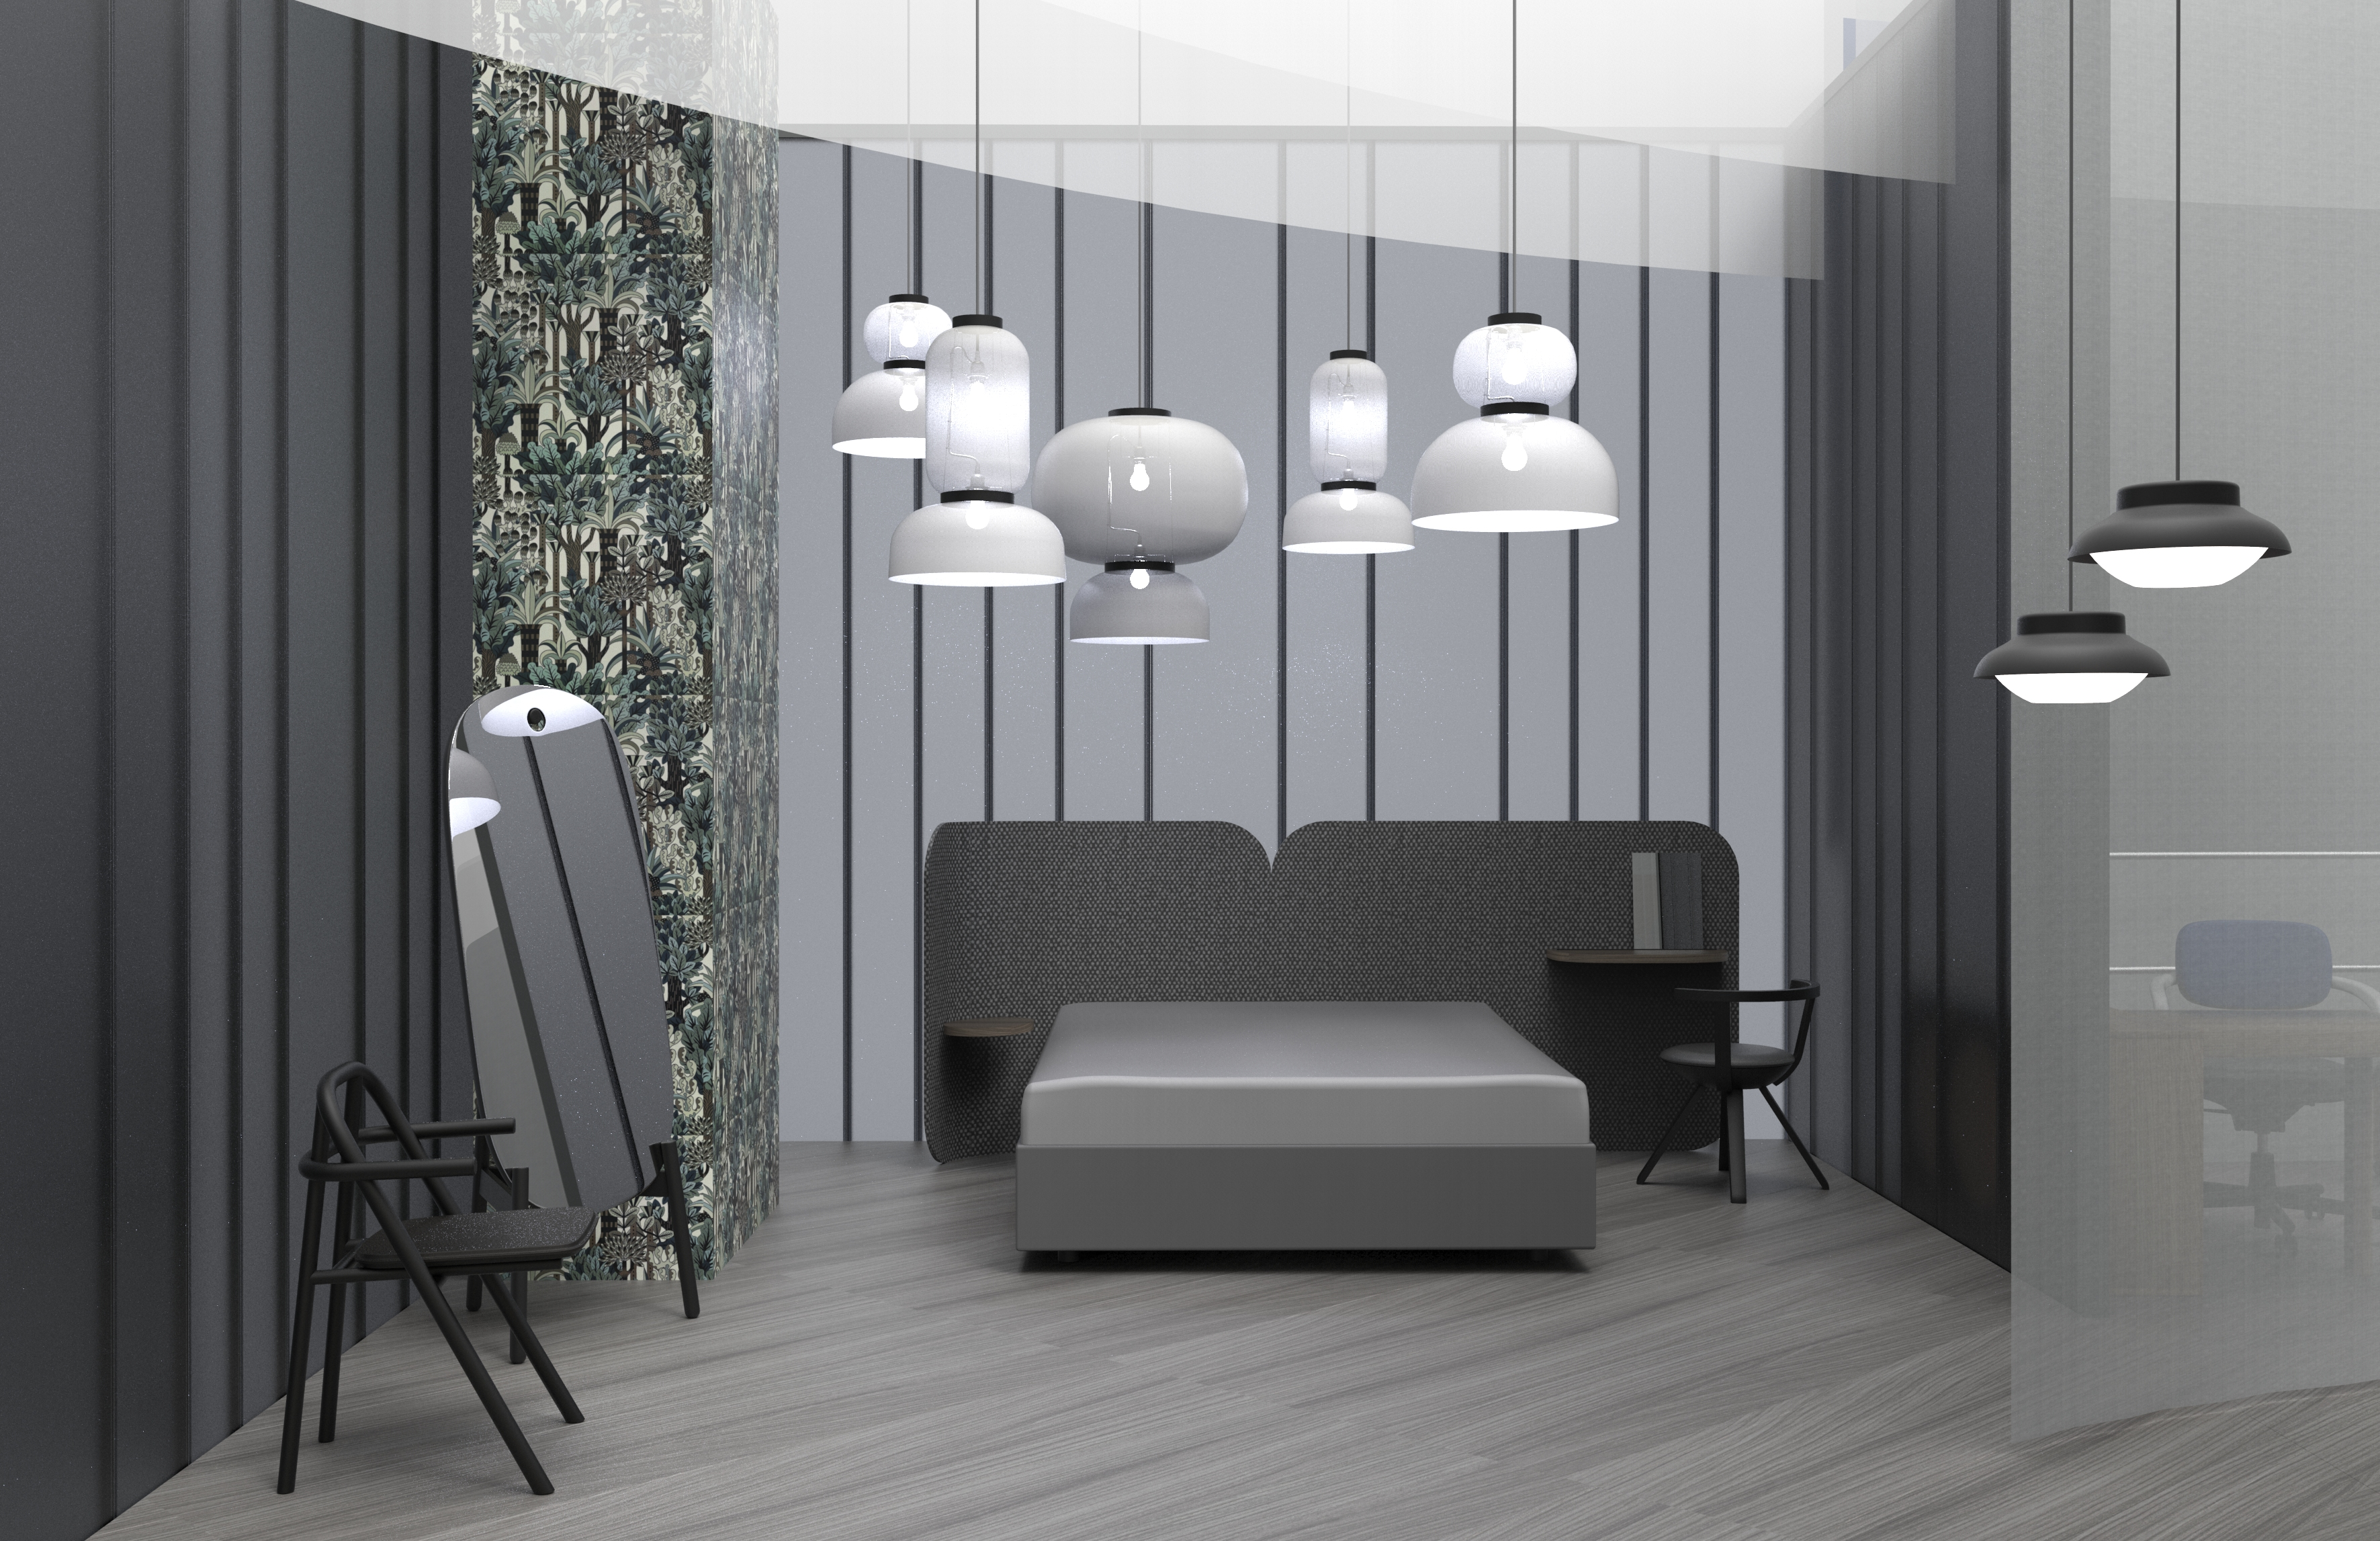 trendletter imm cologne das haus beyond the ivory tower. Black Bedroom Furniture Sets. Home Design Ideas